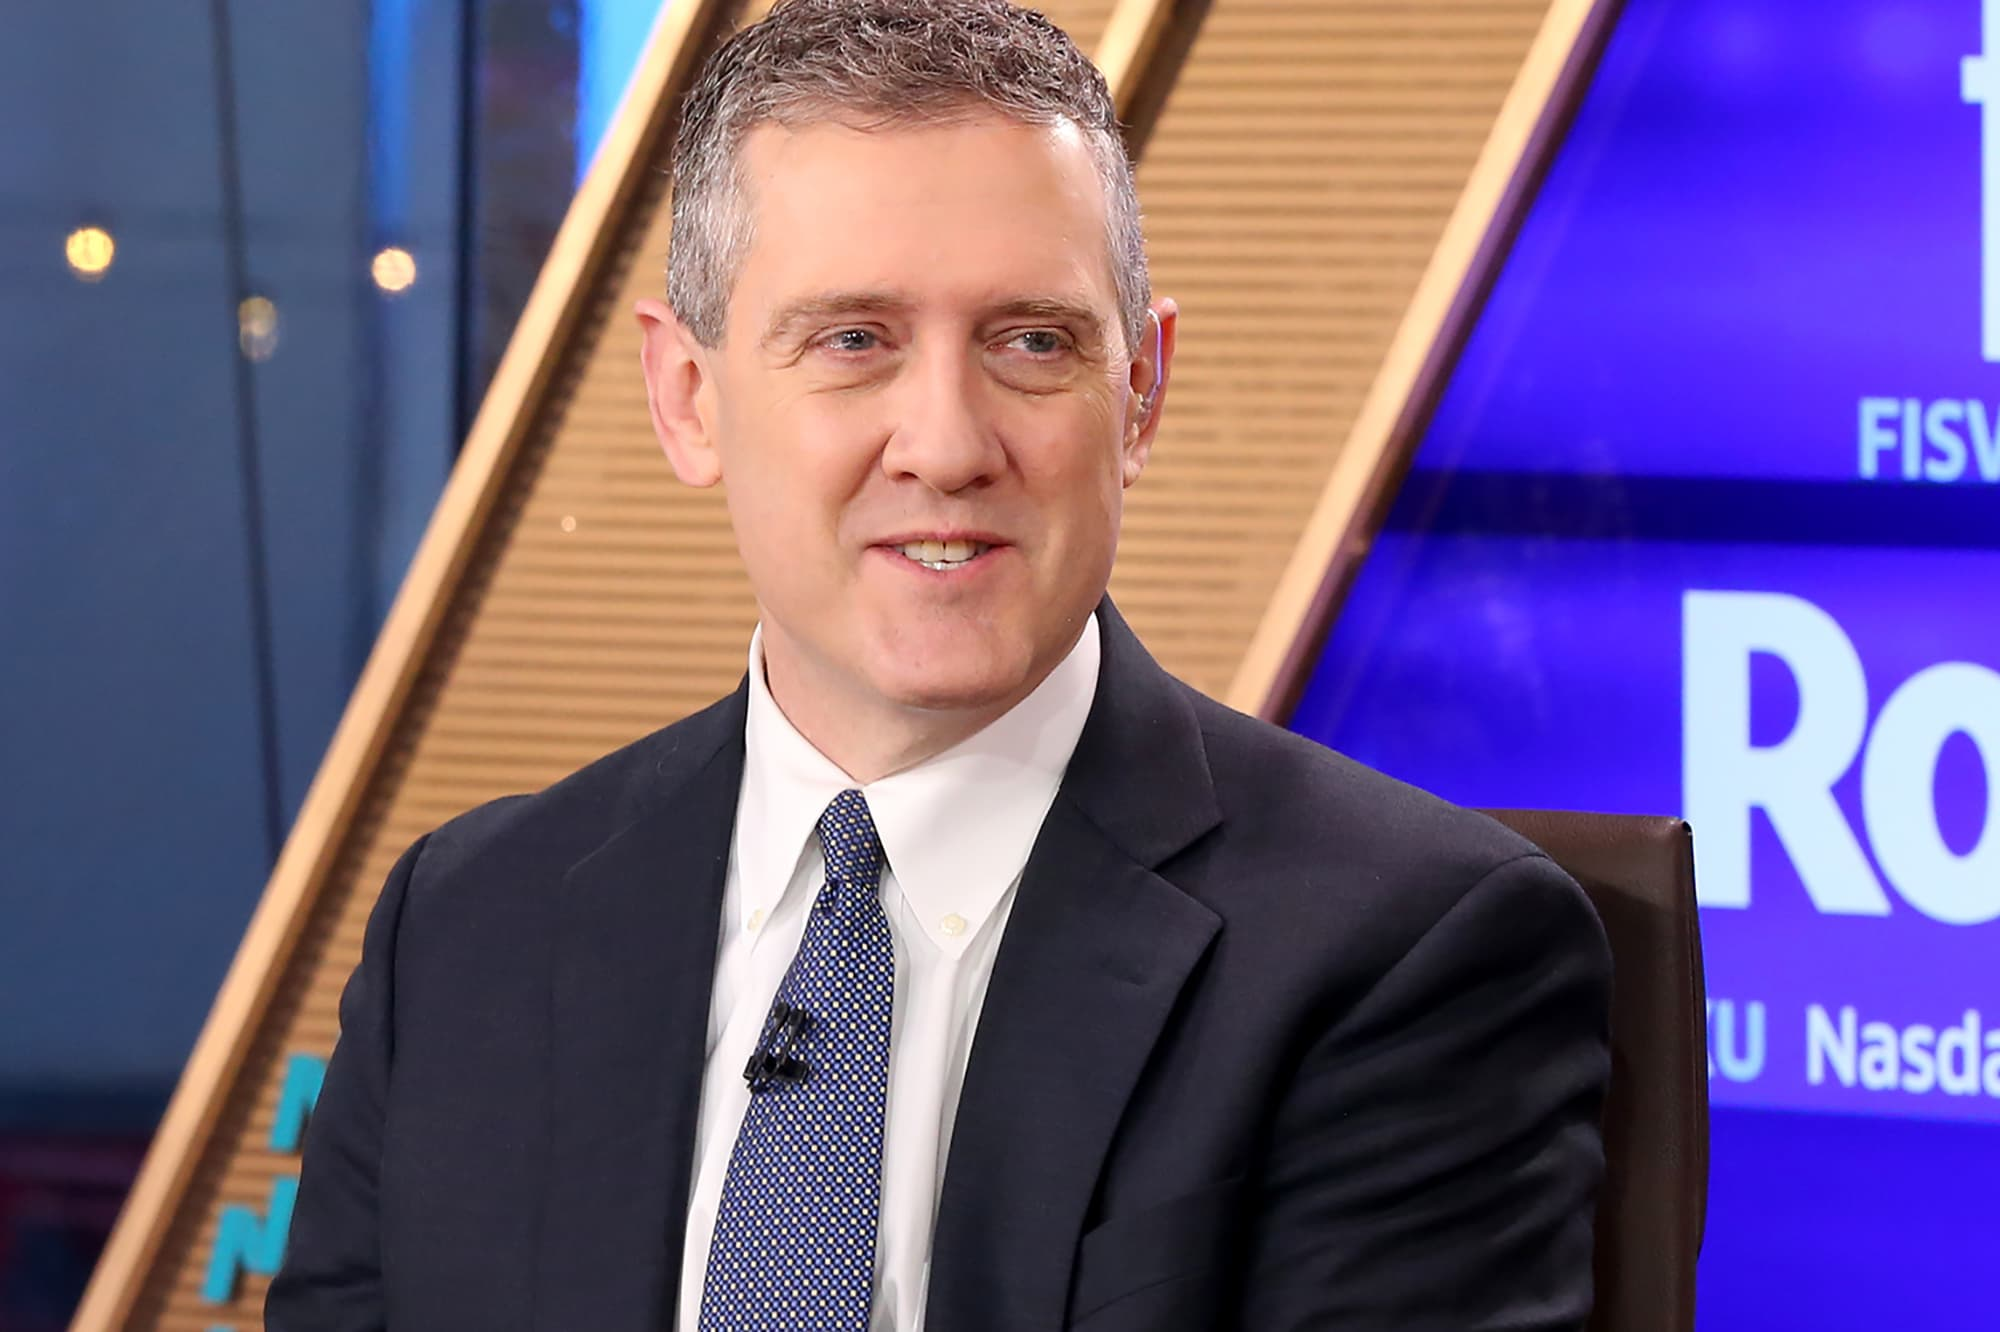 Expectations for a rate cut will fade as coronavirus fear eases, Fed's James Bullard says